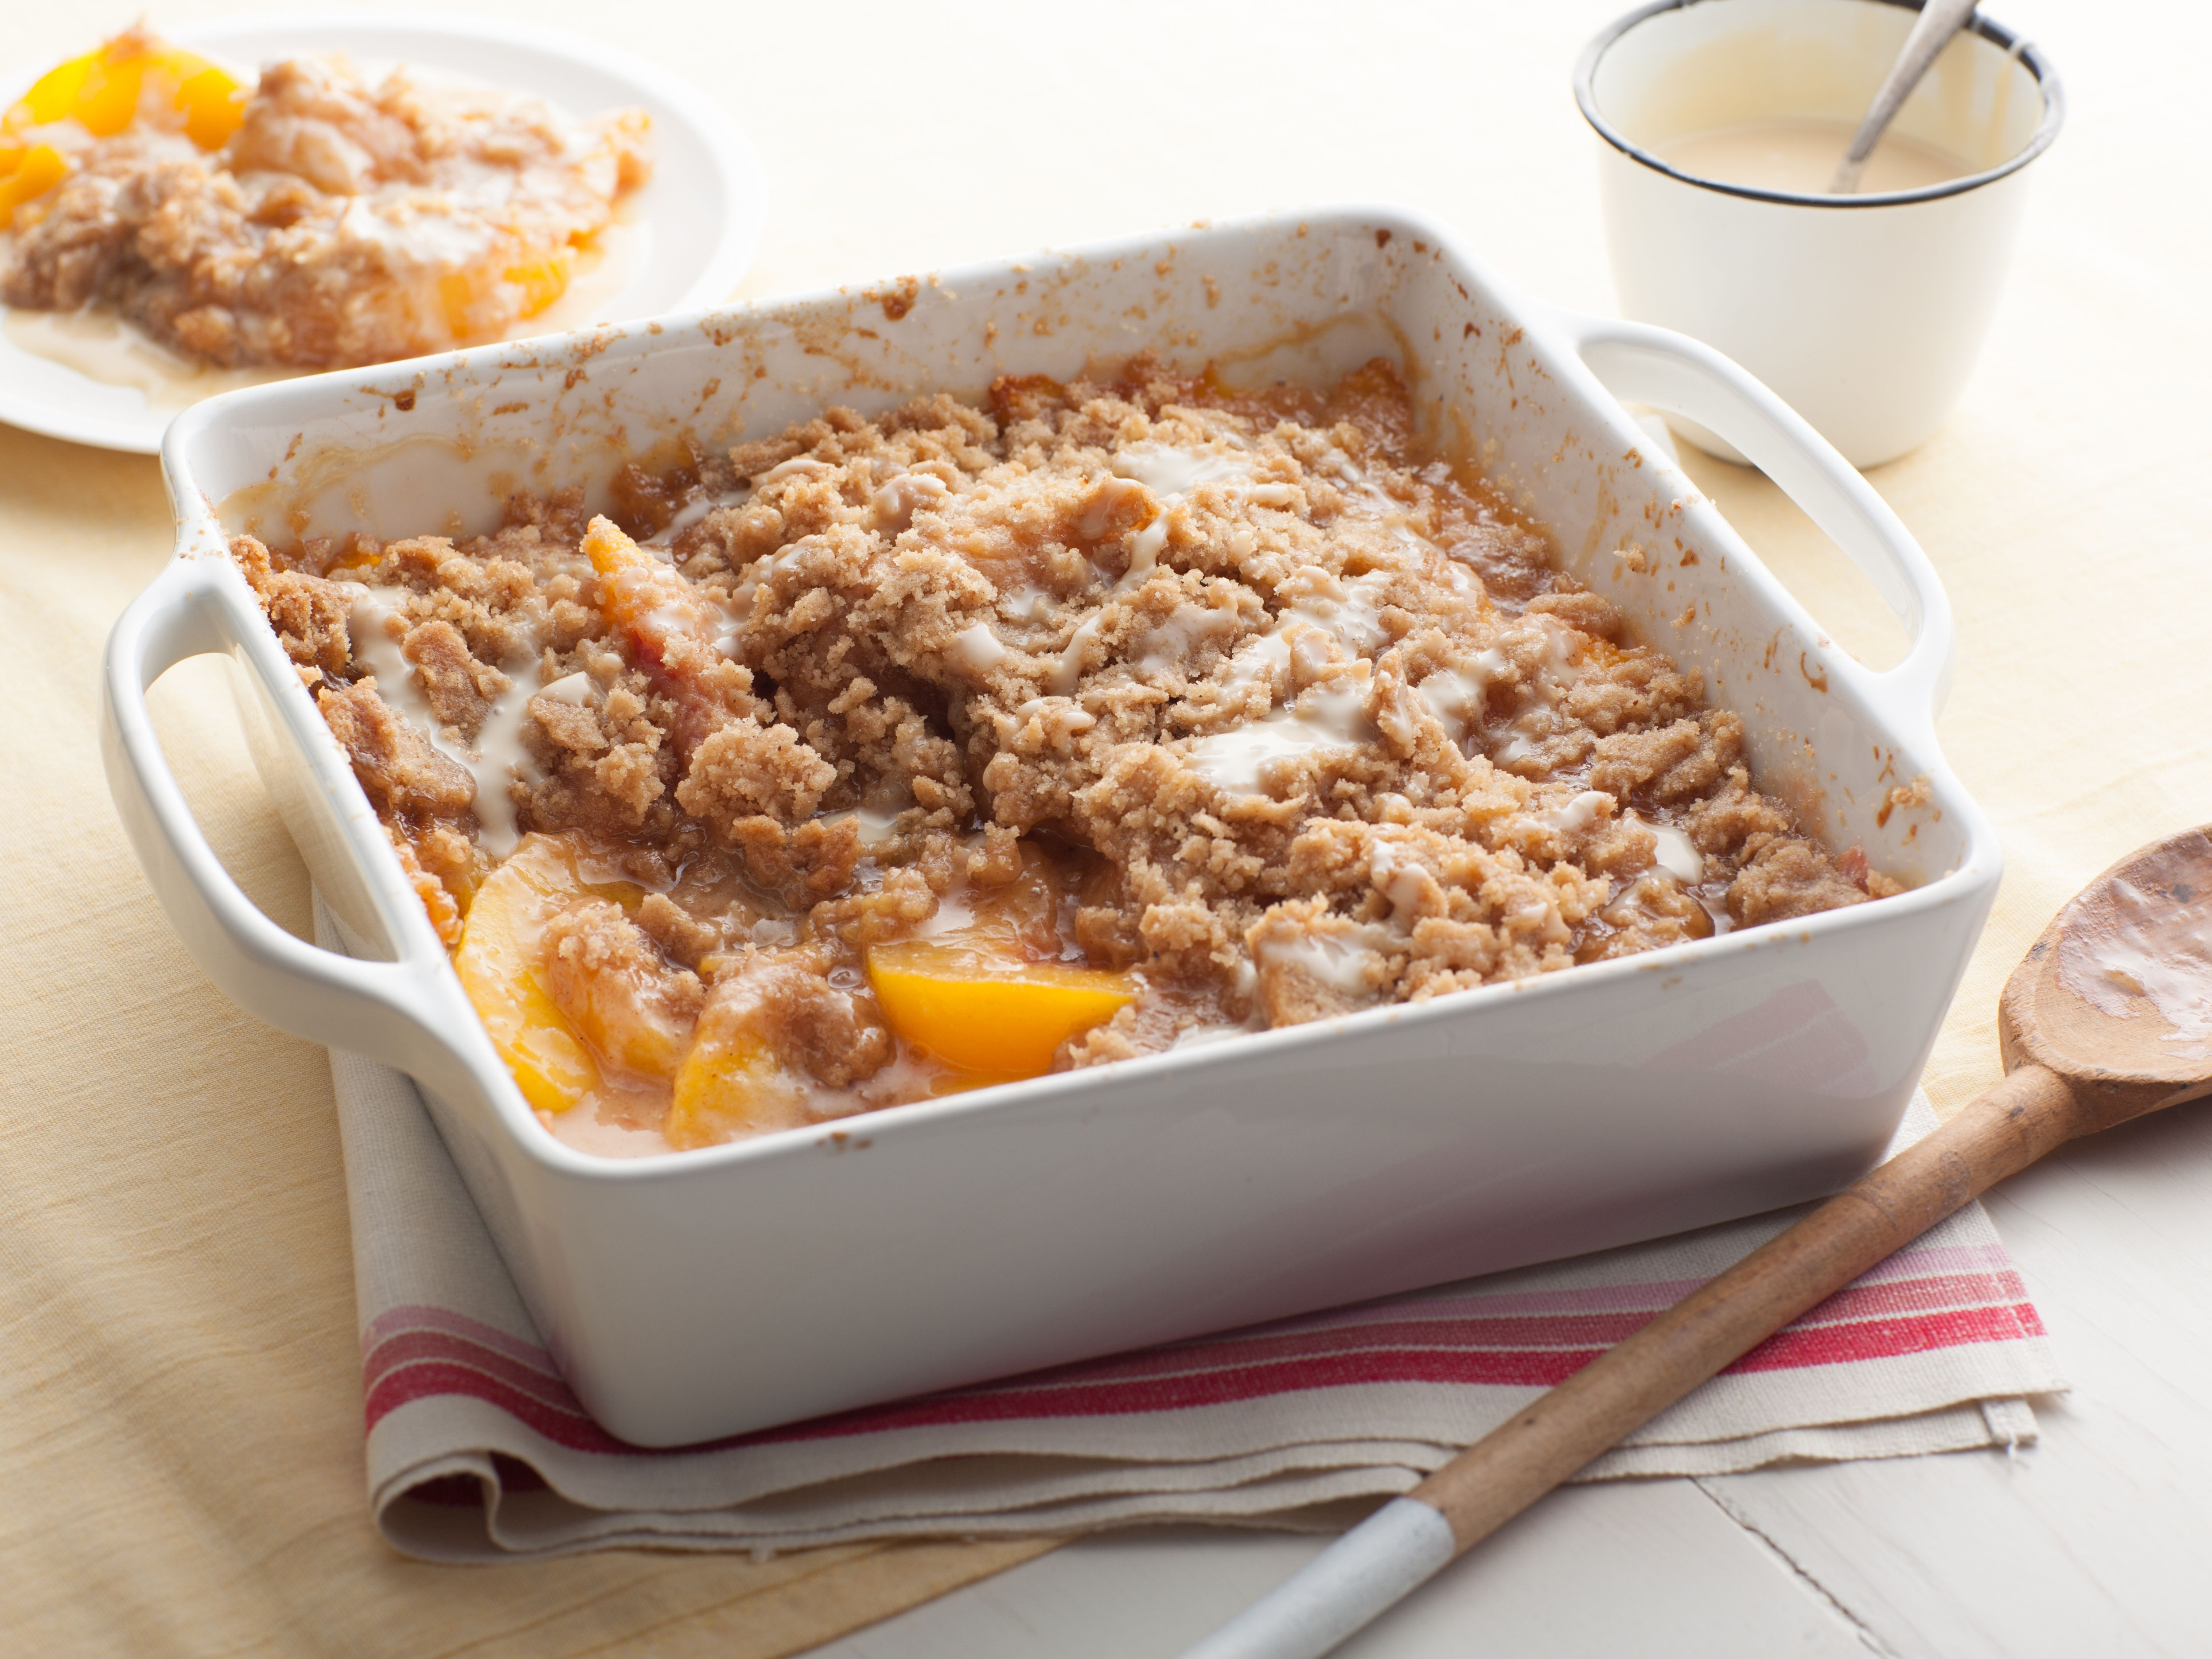 Peach crisp with maple cream sauce recipe pinterest peach peach crisp with maple cream sauce recipe pinterest peach crisp cream sauce recipes and maple cream forumfinder Images